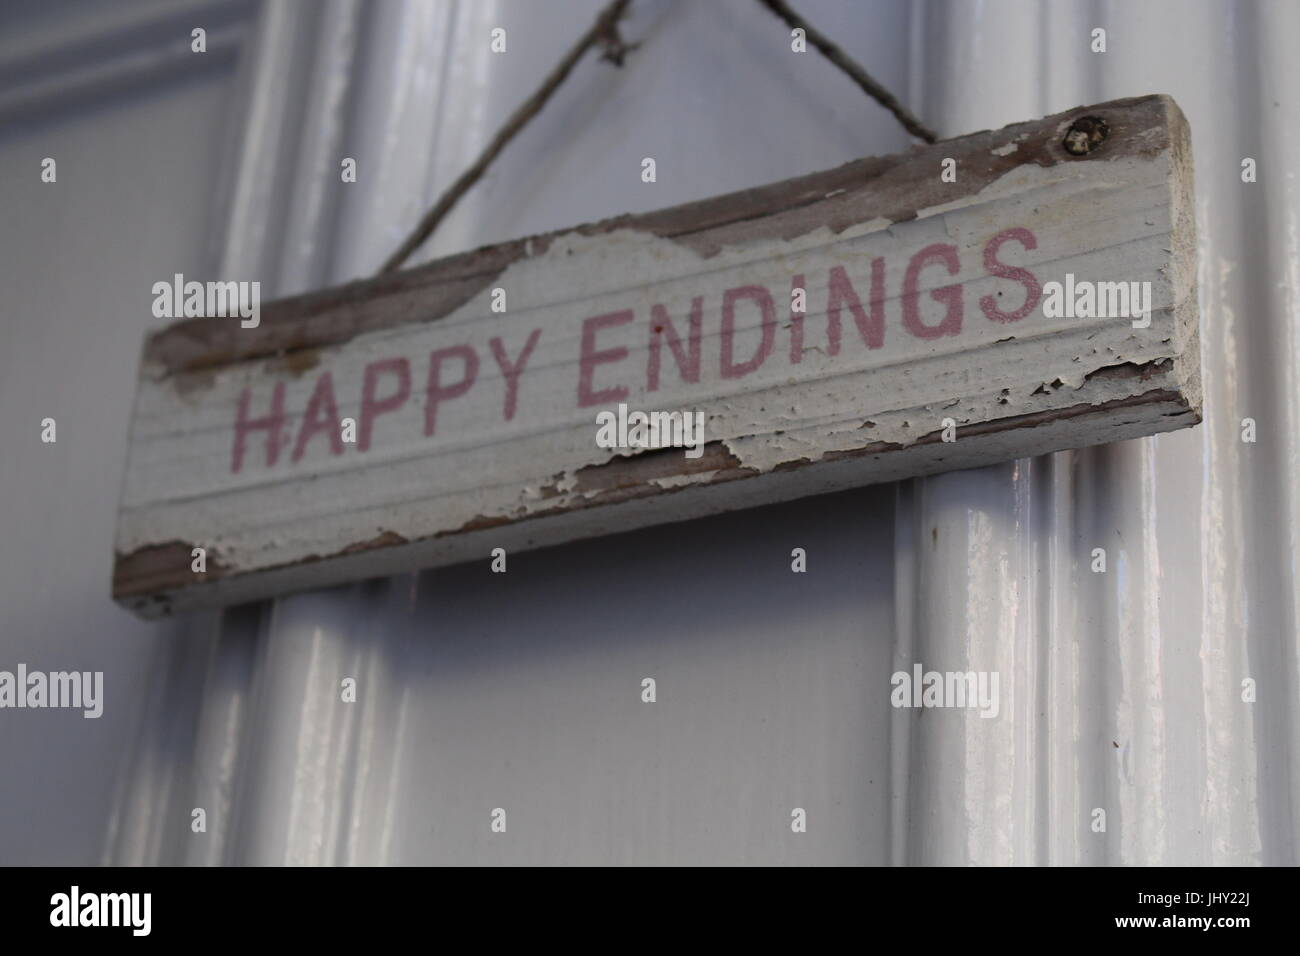 happy endings, happy ending, cute sign, shabby chic, wedding, wedding theme, sign, happy endings sign, matrimony, - Stock Image